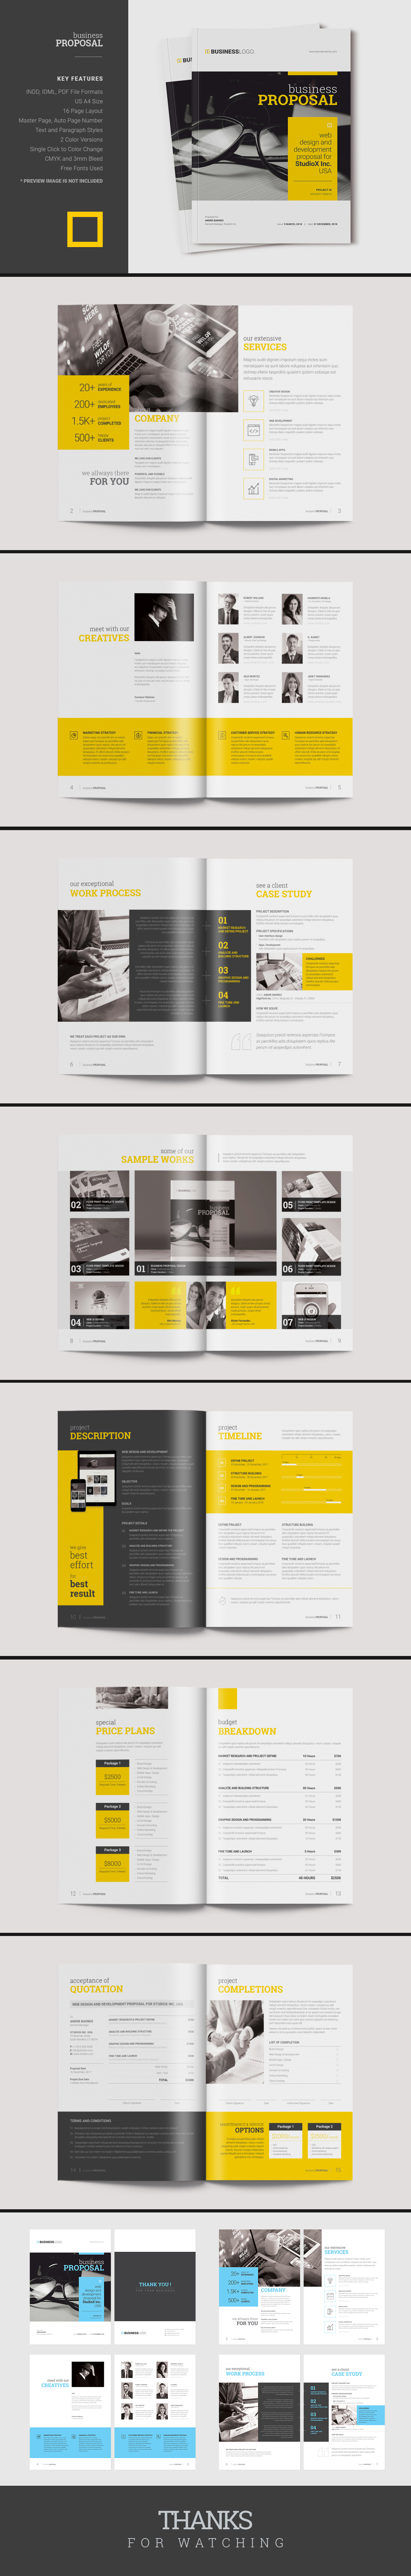 Pages Professional Business Proposal Template Can Be